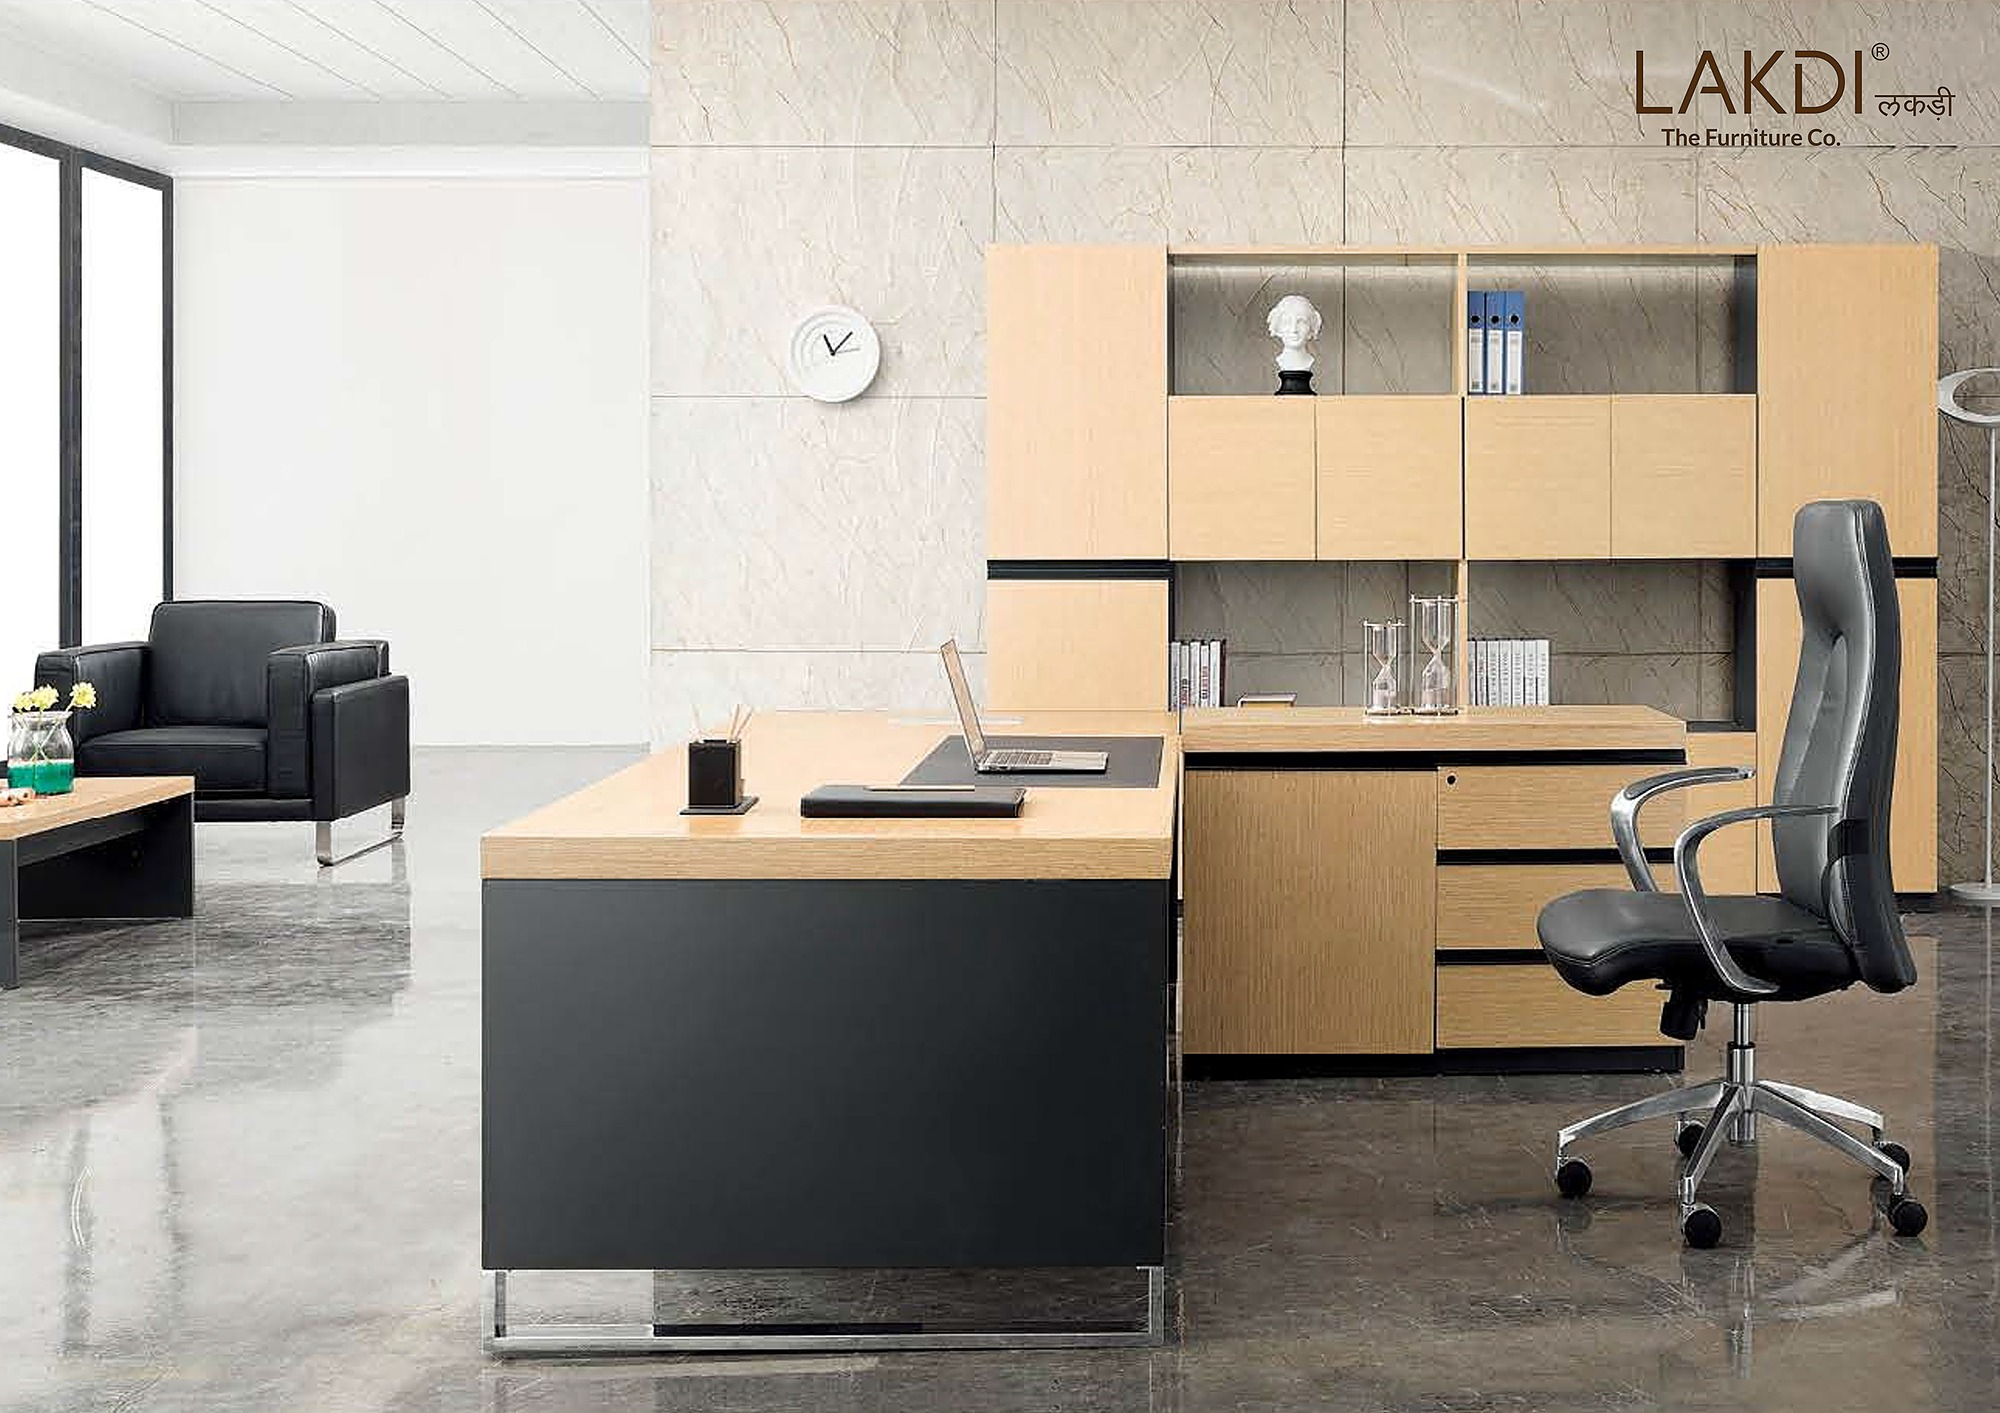 How To Make The Best Use Of Space With A Small Office Lakdi The Furniture Co Guides